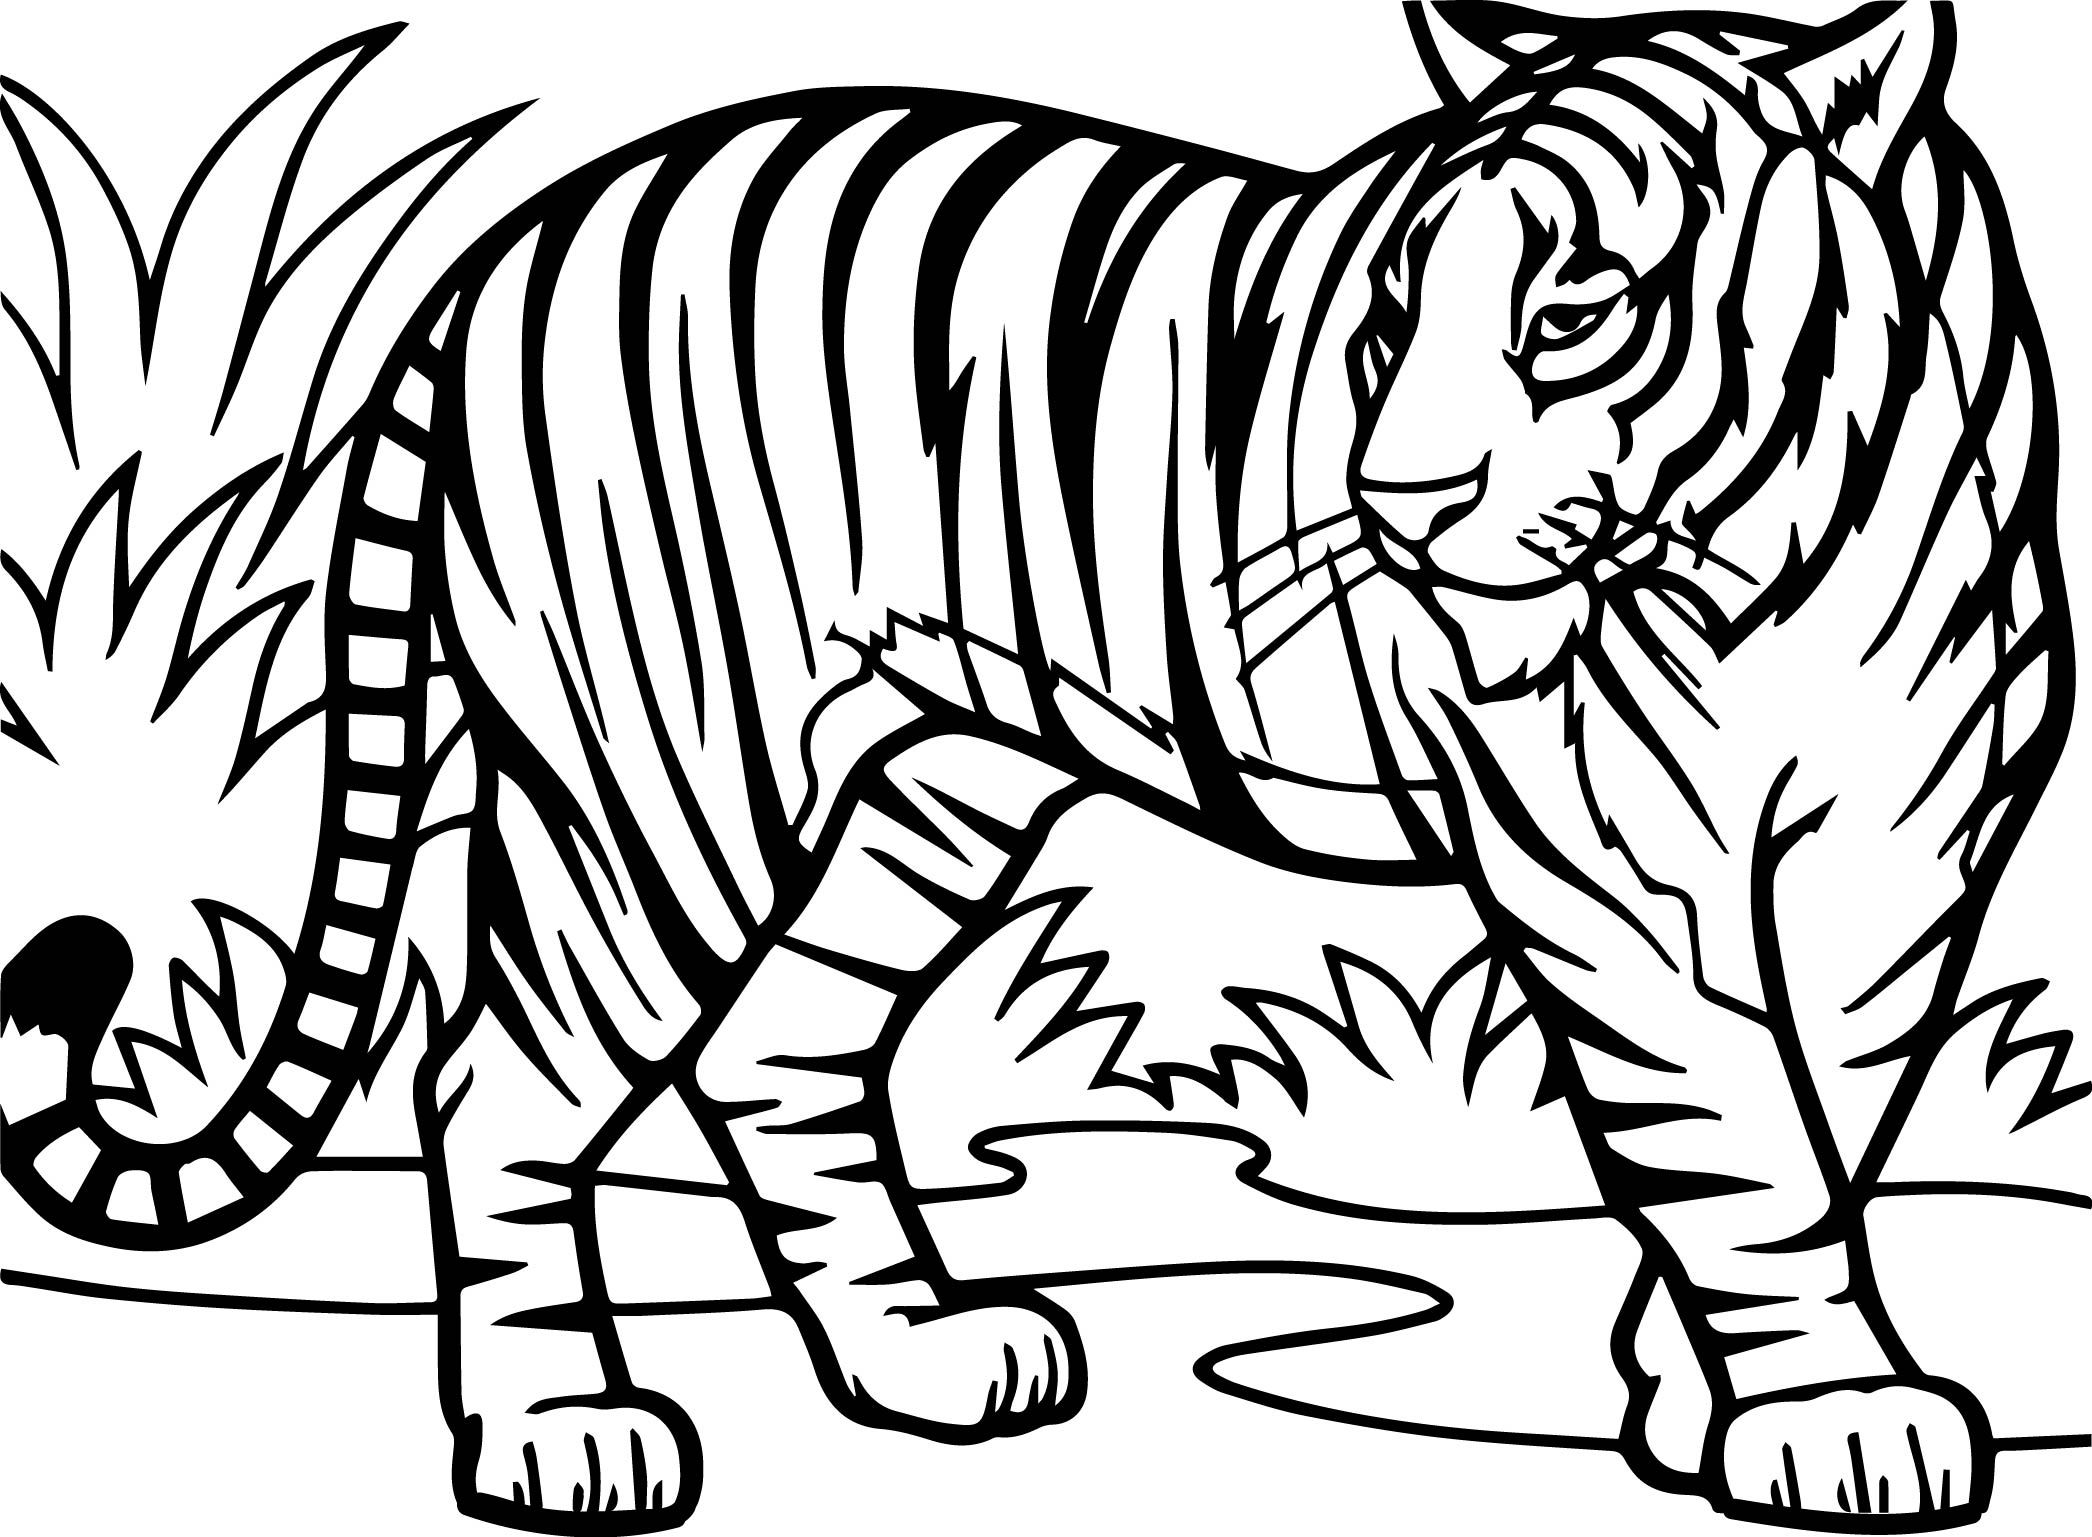 Coloring Page Tiger Animal Coloring Pages 18 Animal Coloring Pages Zoo Coloring Pages Butterfly Coloring Page